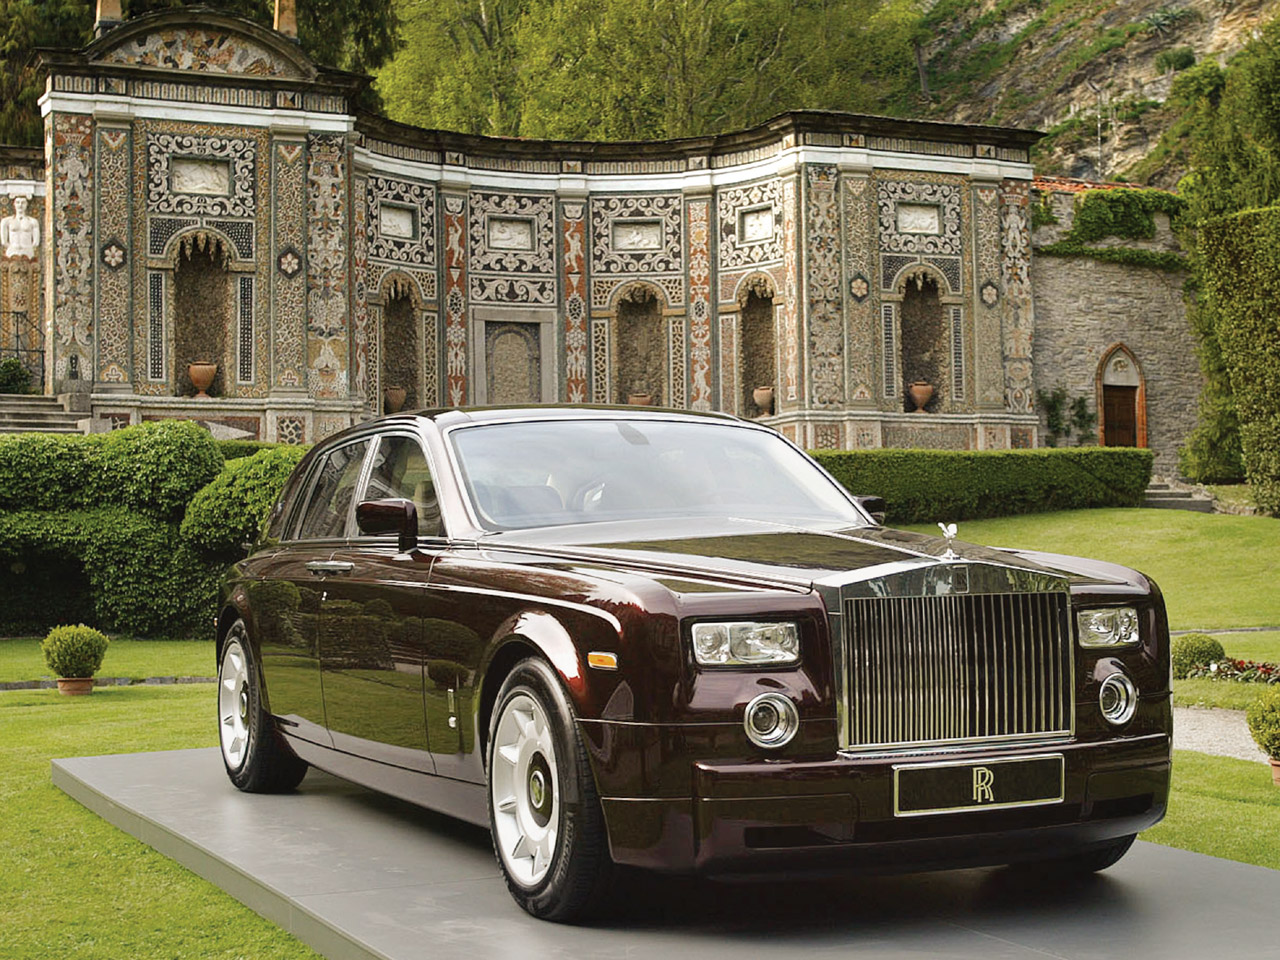 Rolls Royce Cars Images Cars Wallpapers And Pictures Car Imagescar